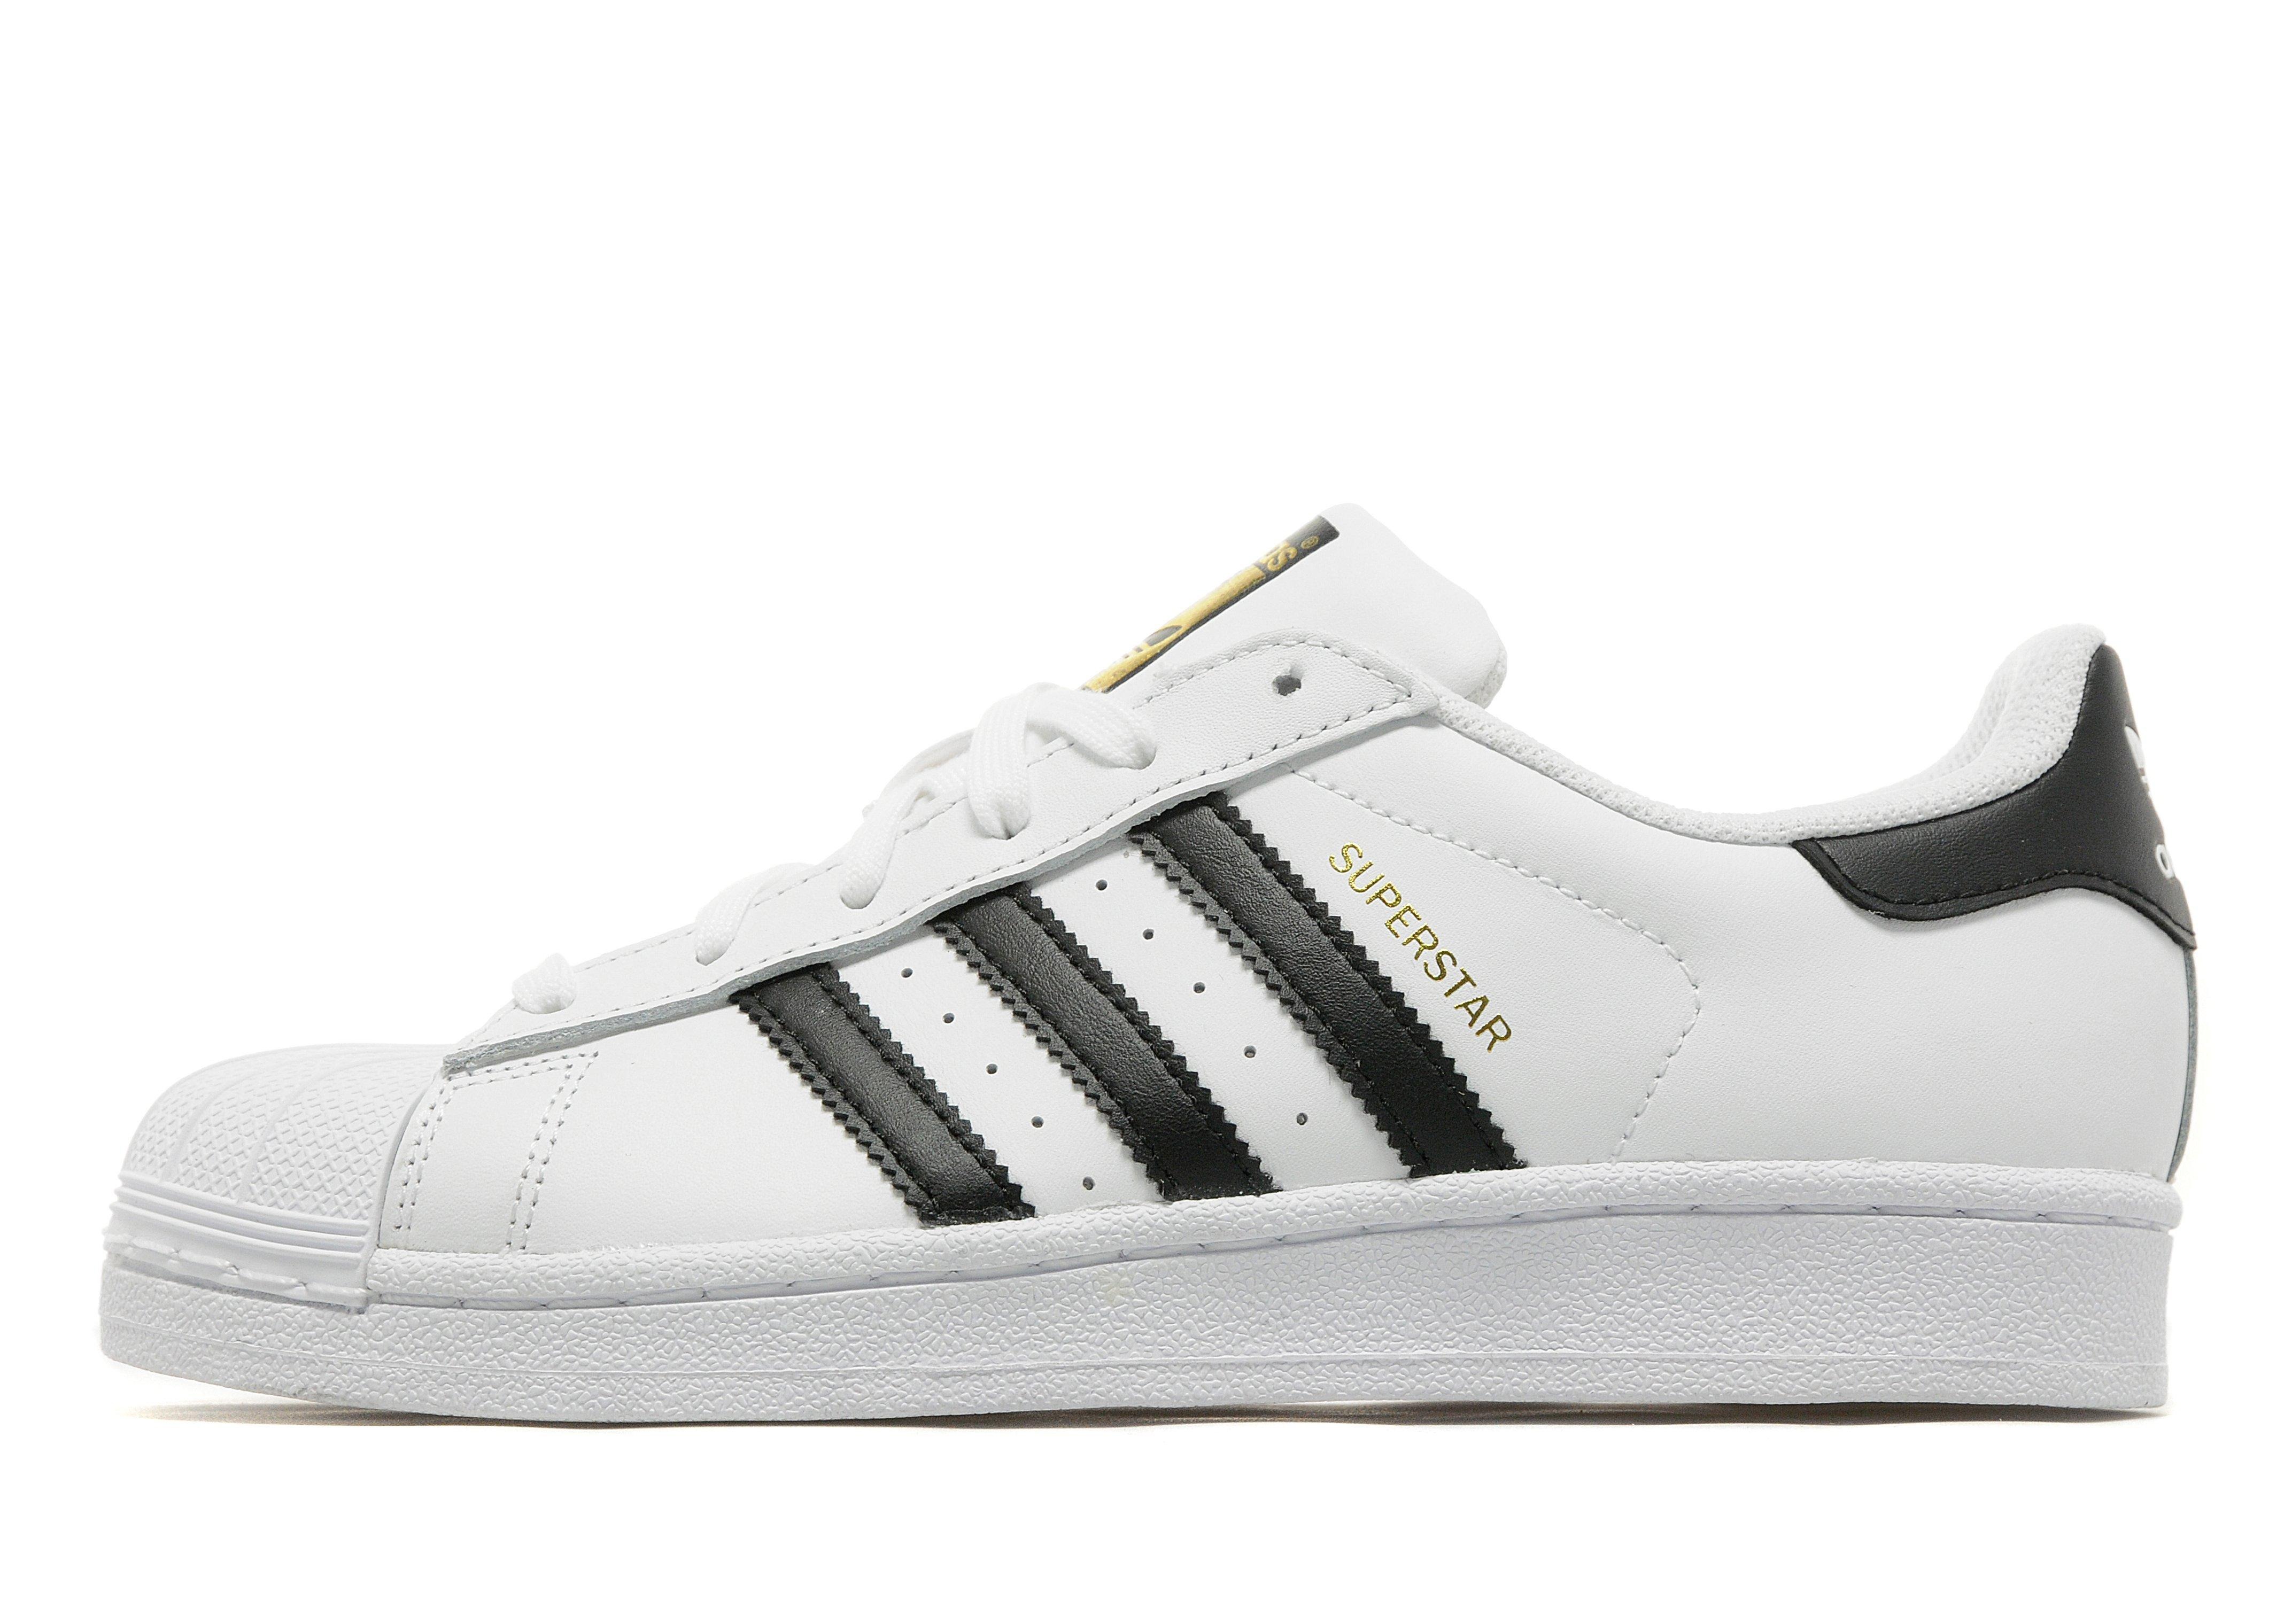 image gallery jd shoes uk